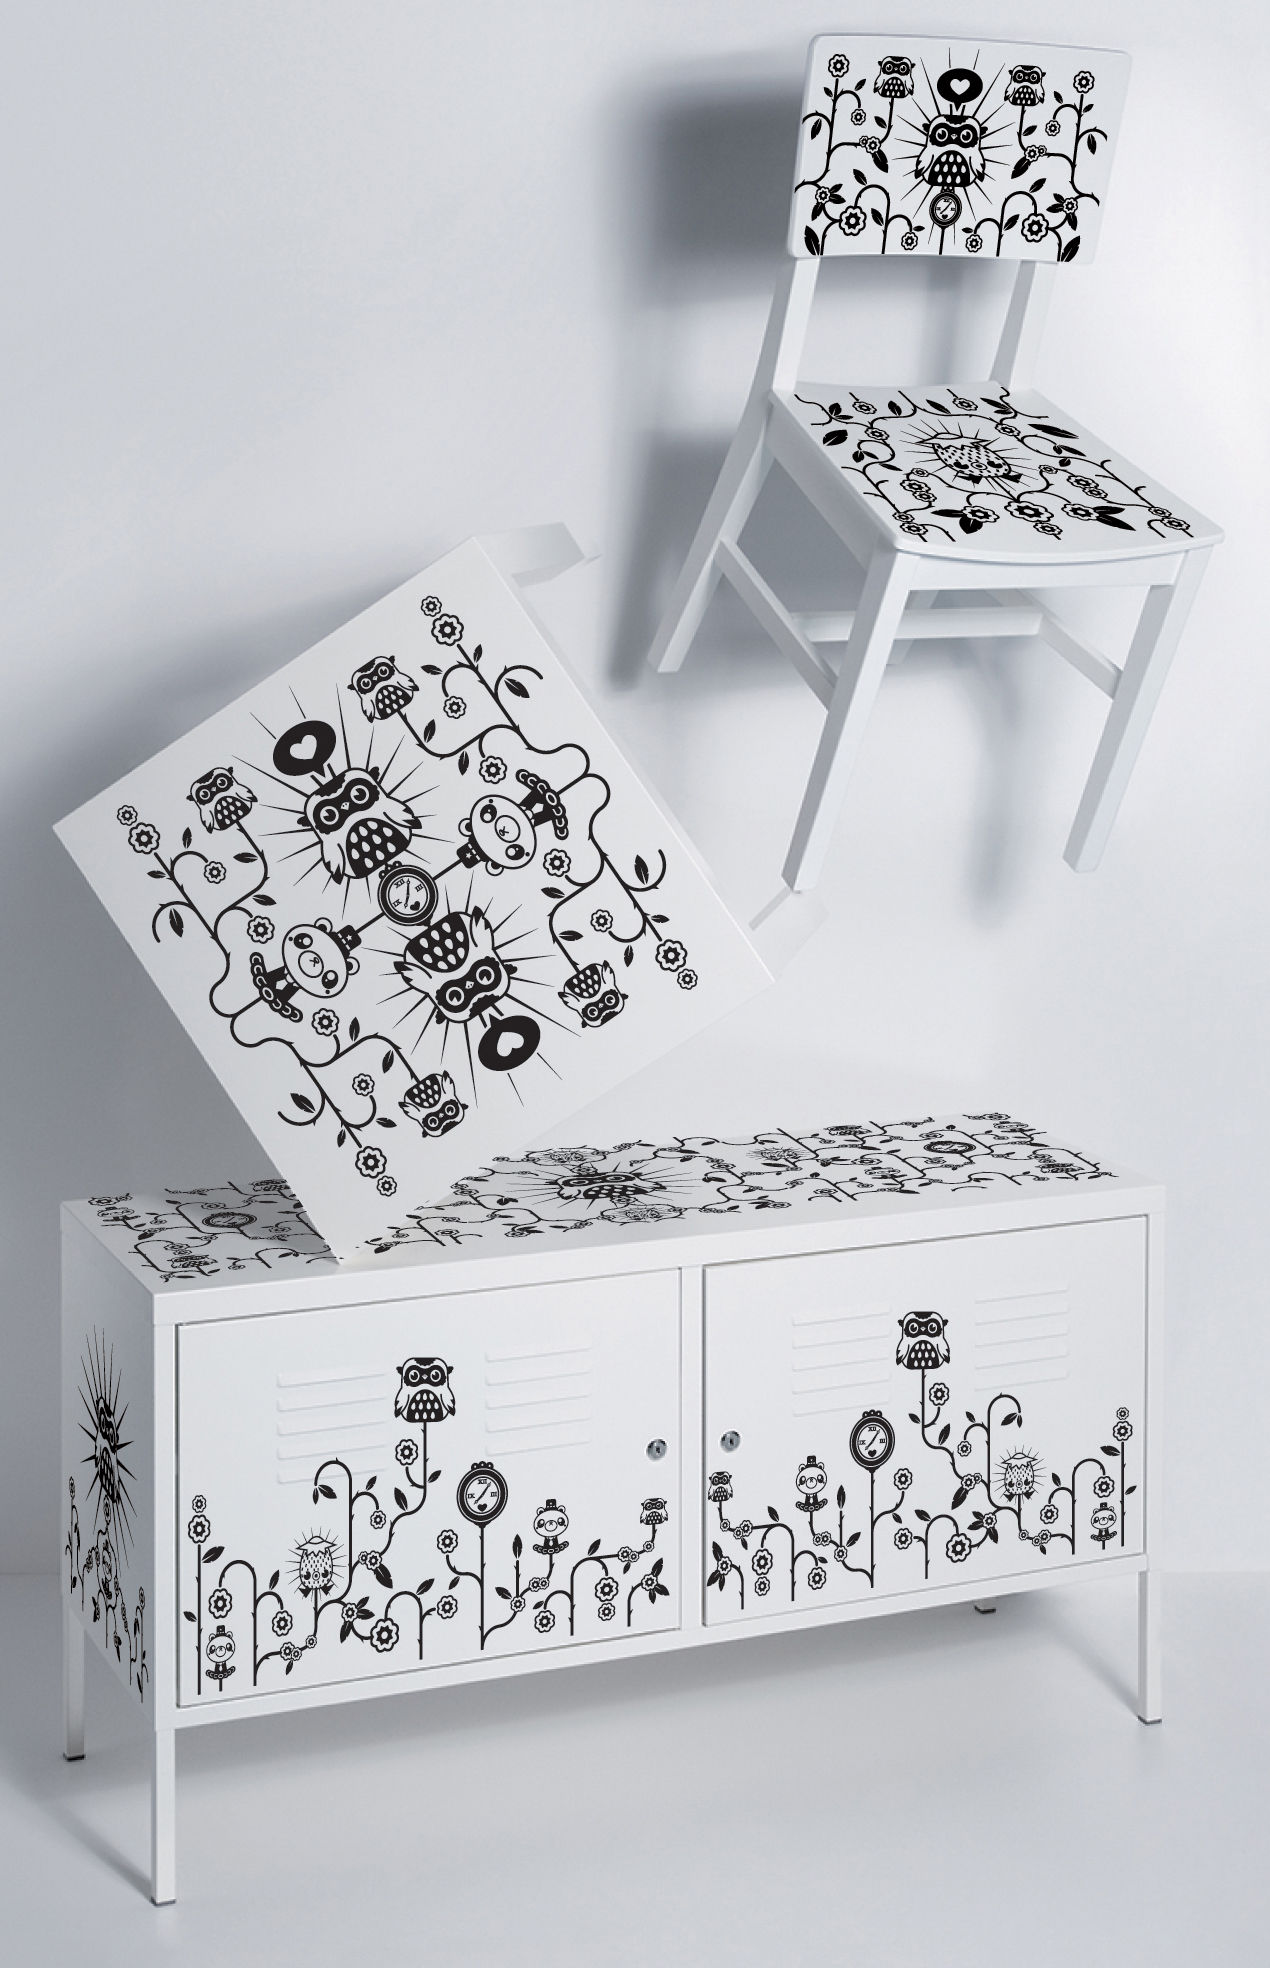 Vinyl Deco Meuble Sticker De Meuble Par Tado Pour Commode Domestic